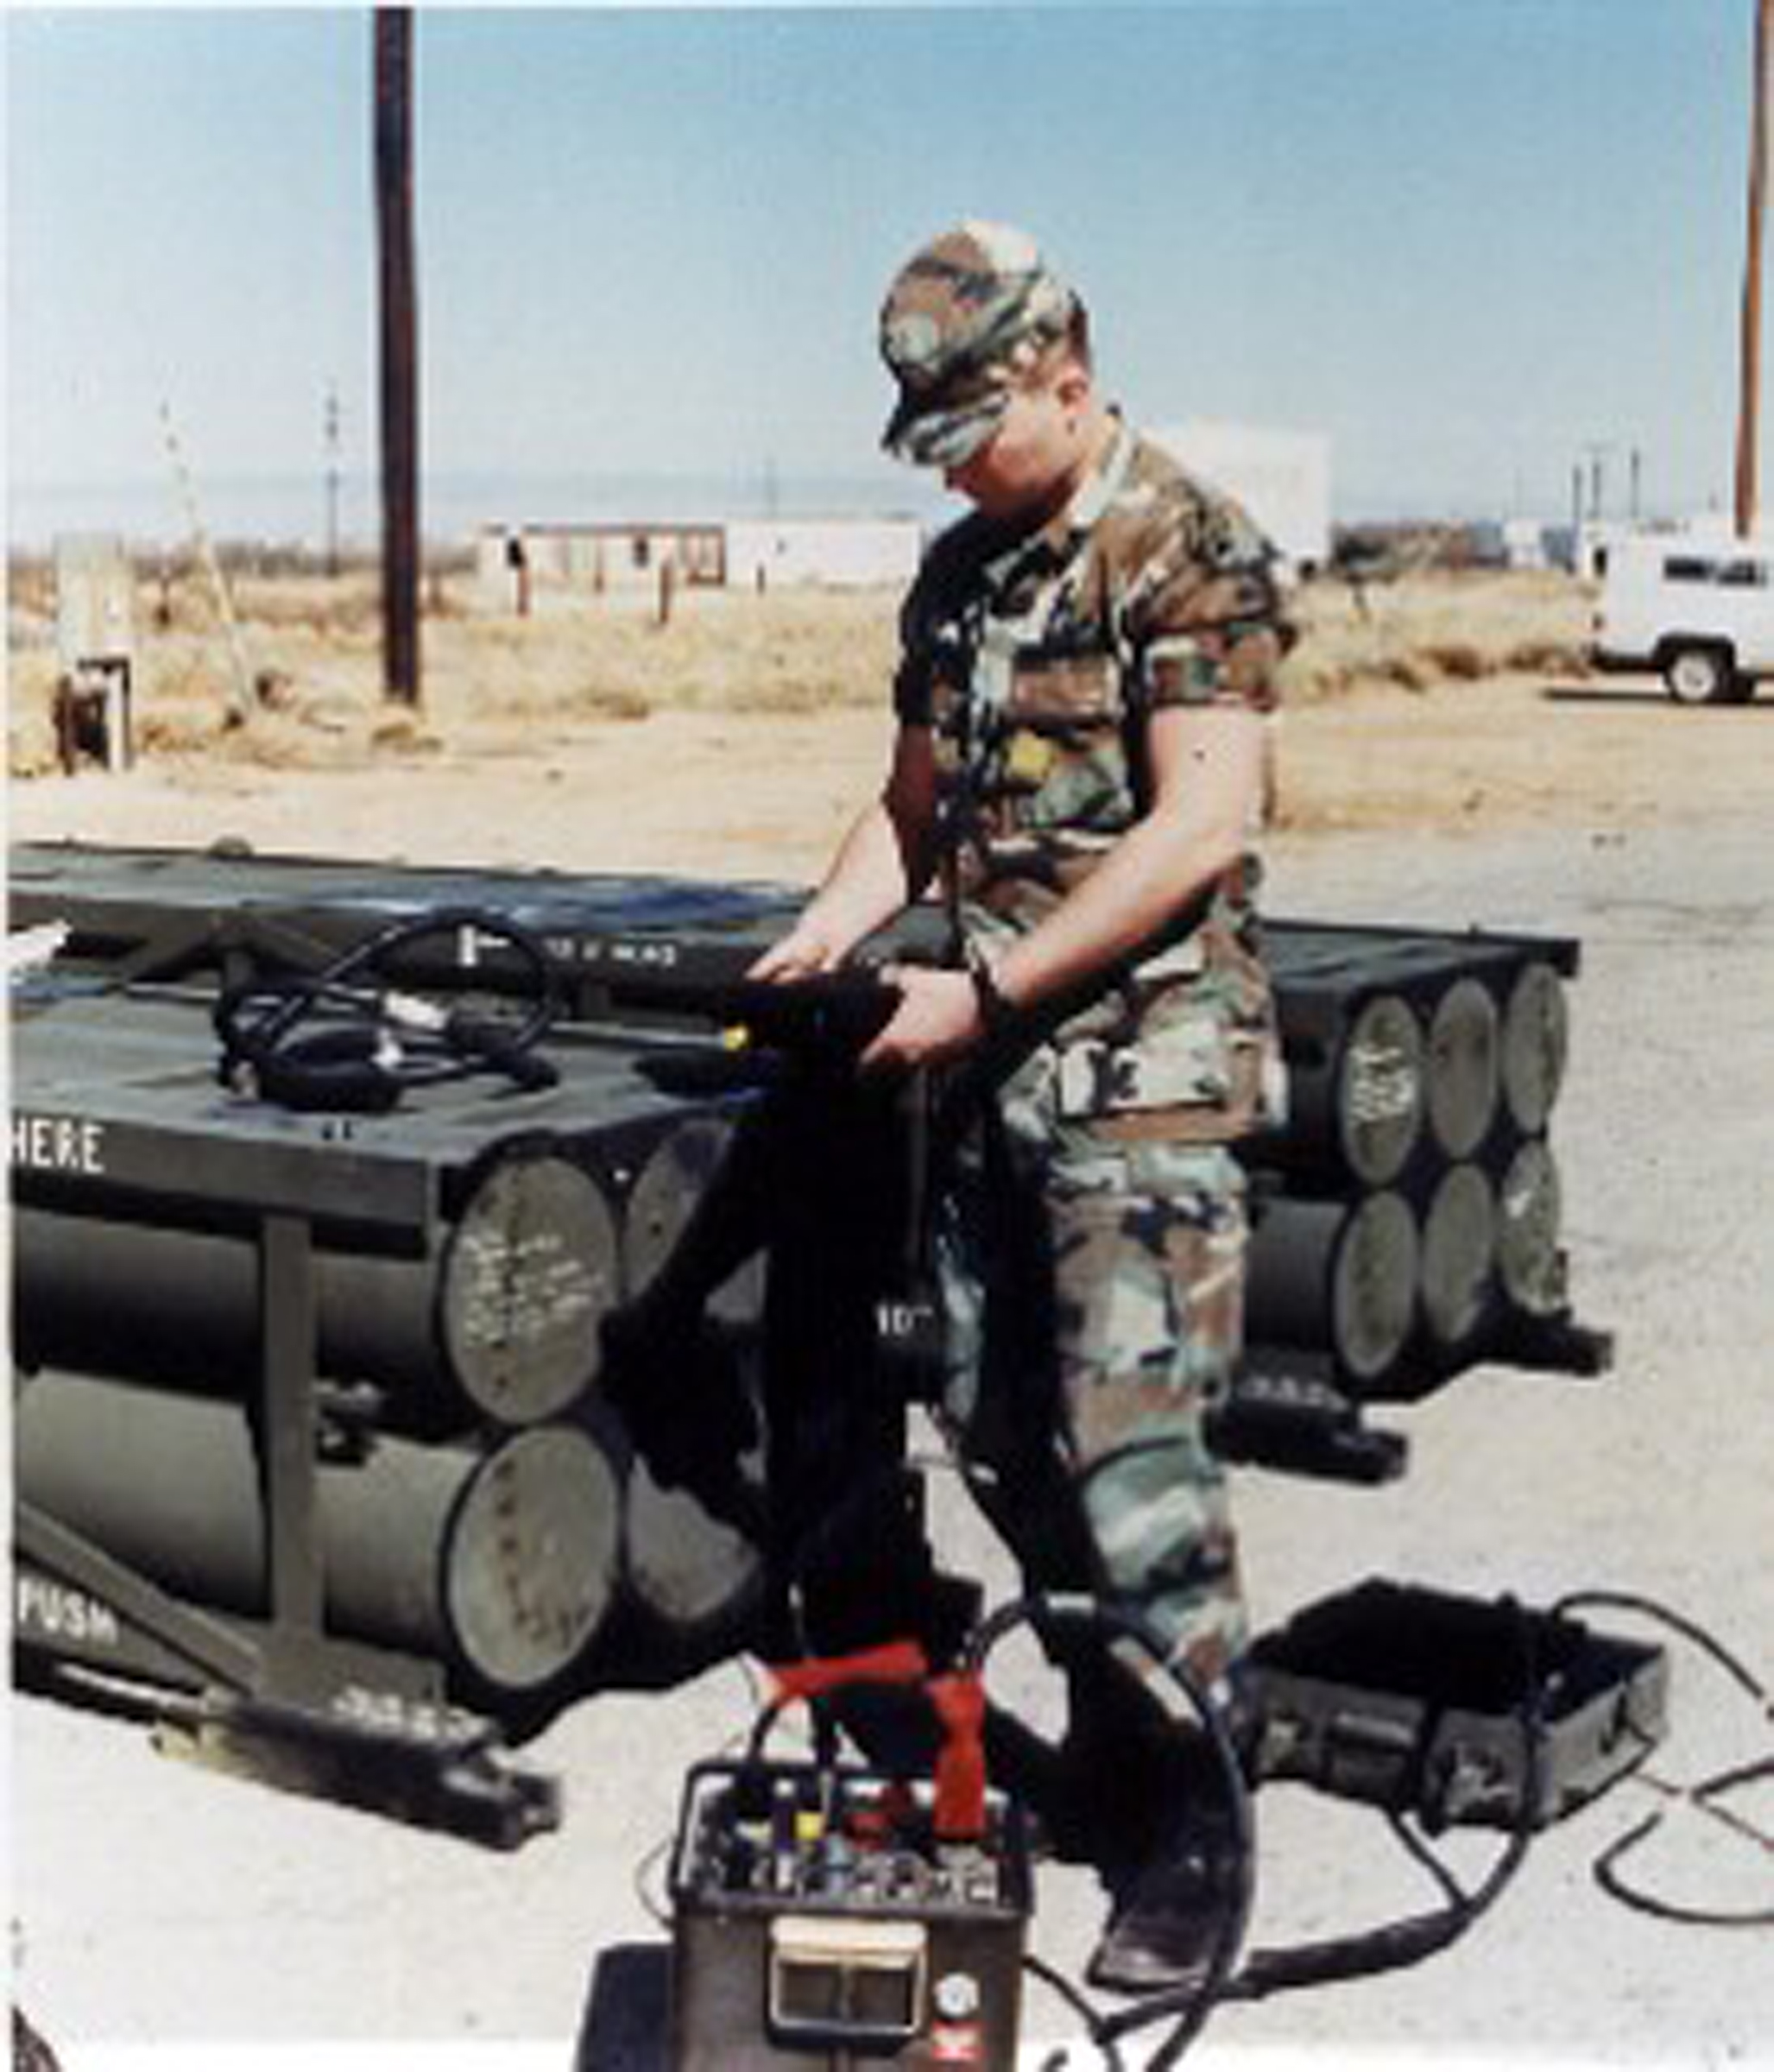 A Soldier from the 6th Battalion, 27th Field Artillery Regiment, the test unit for the ATACMS' IOT&E, operates the missile monitor test device, with which the ATACMS was supposed to be interoperable. However, not having received sufficient emphasis before OT, the device surprised the PMO by testing good missiles to be bad and bad missiles to be good. (Photo courtesy of the author)